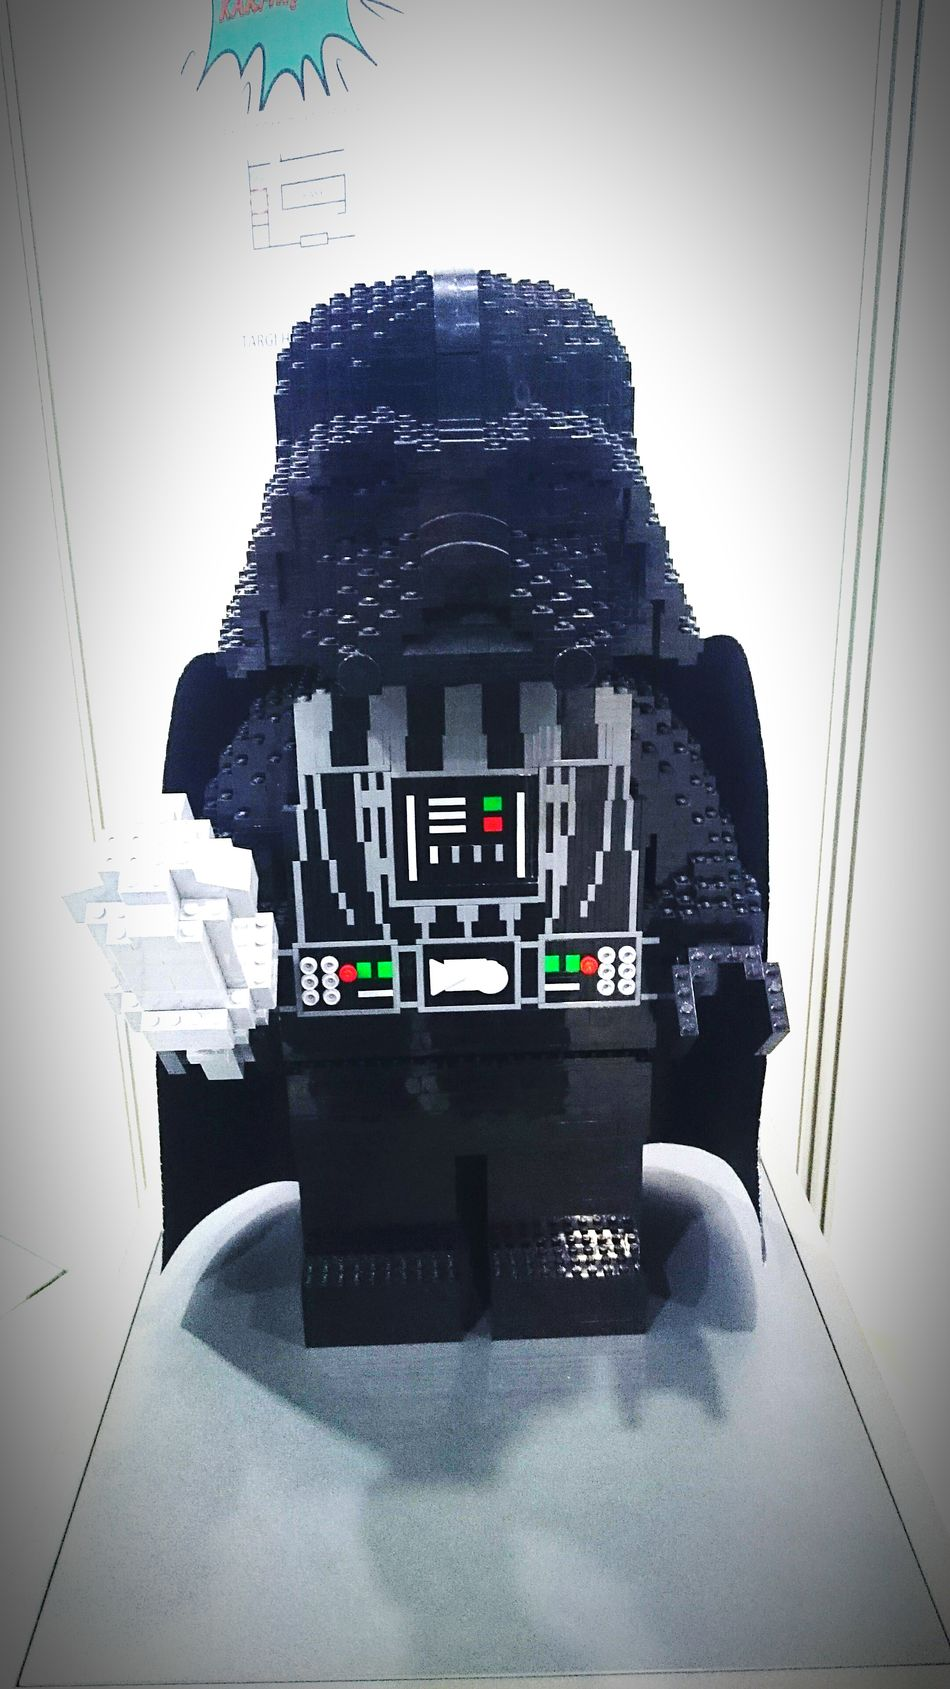 Fantasy Fest Festival Falkon Robots Robot Starwars StarWars Collection Lego Minifigures LEGO Eeyem Photography EyeEm Day Teamwork No People Backgrounds Art, Drawing, Creativity Poland 💗 Art Gallery Legophotography Lego Star Wars  Vader ♥ Vader Lord Vader Lord Vader...the Best